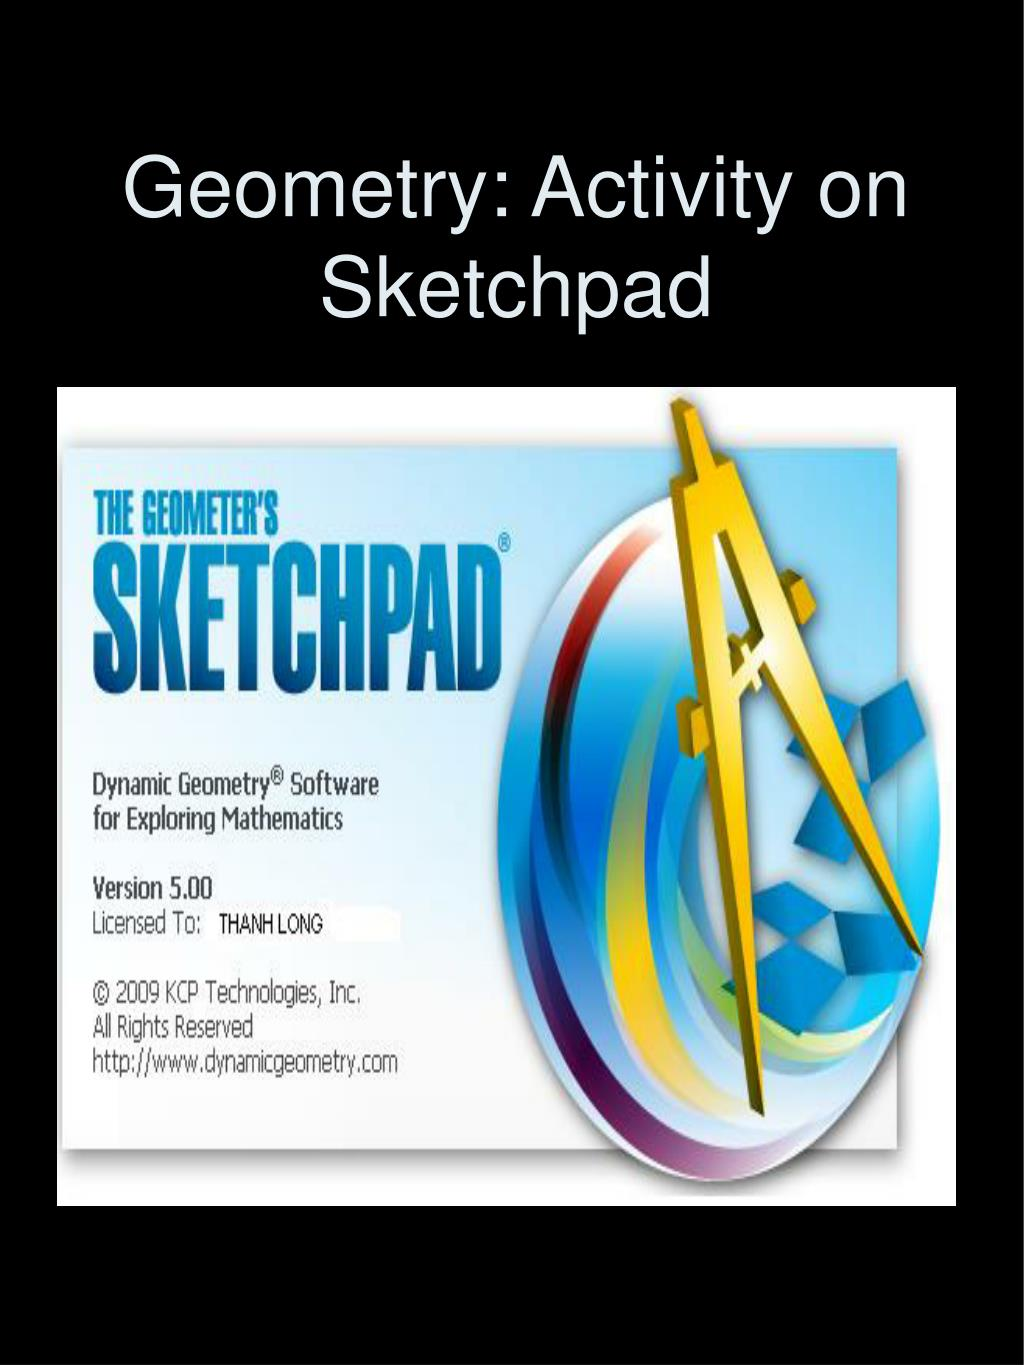 Geometry: Activity on Sketchpad